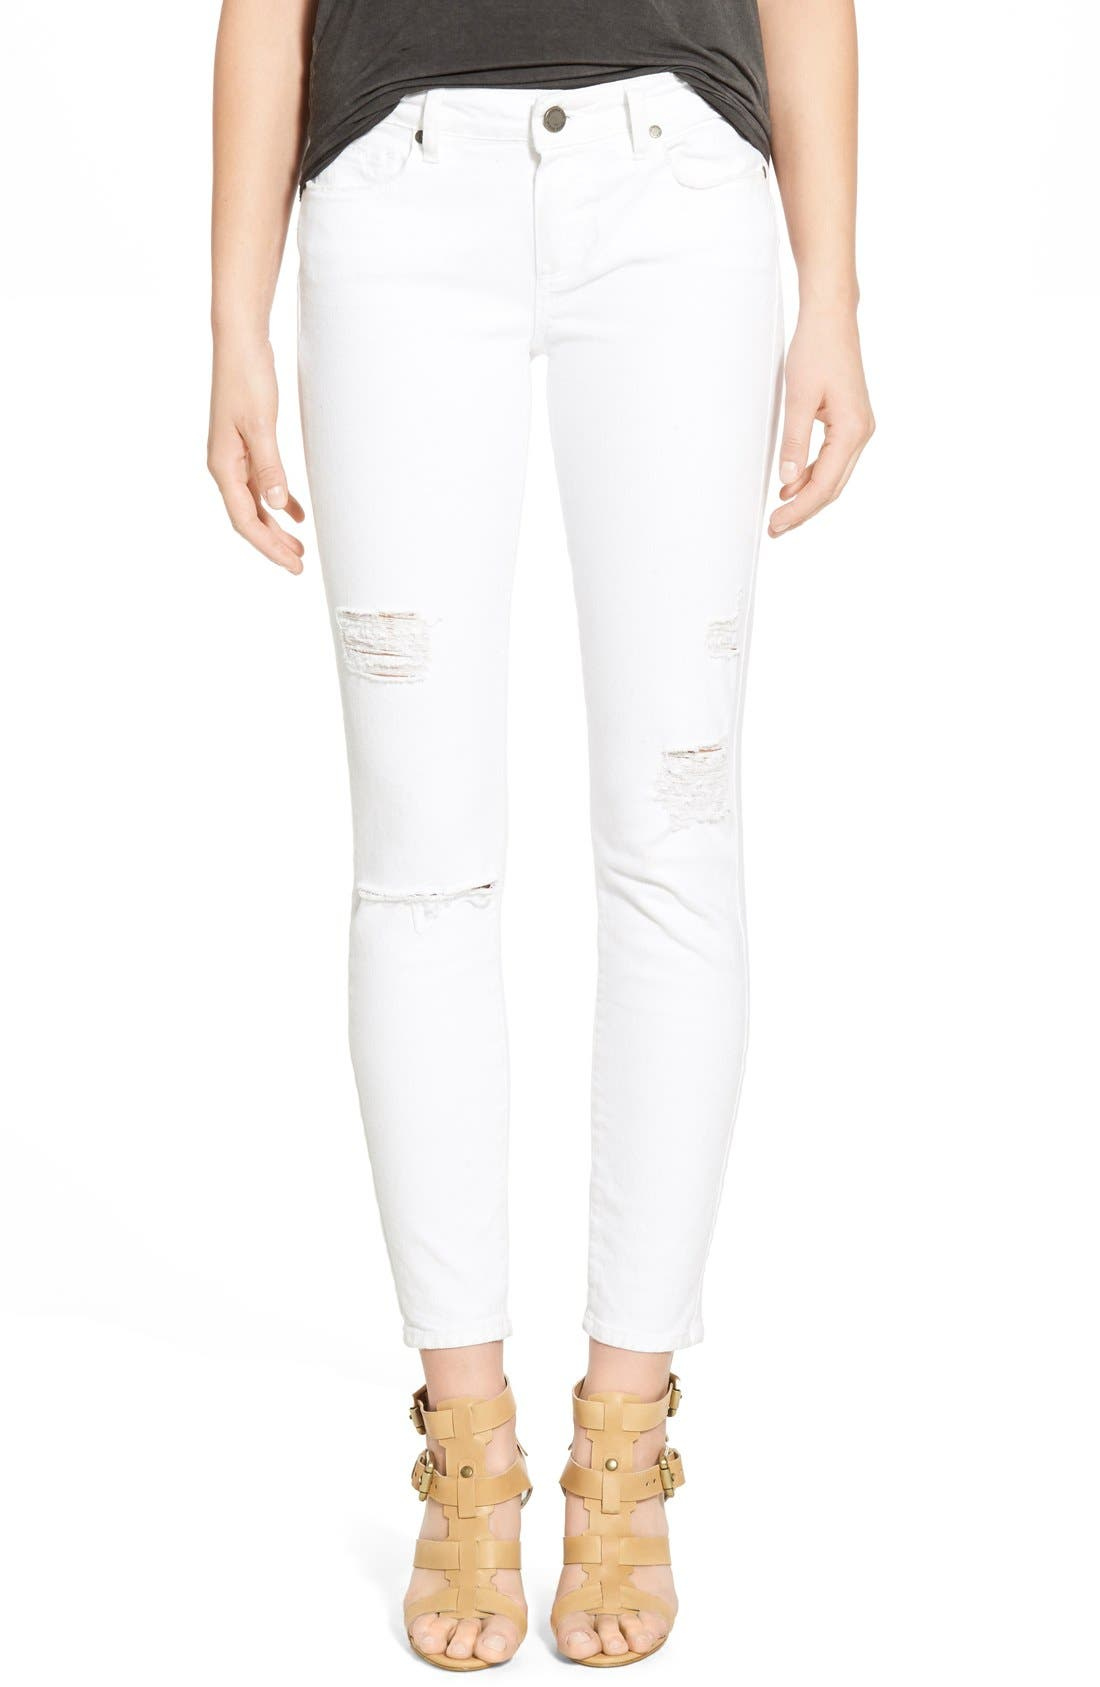 Main Image - PAIGE 'Verdugo' Ankle Skinny Jeans (Arctic White Destructed)